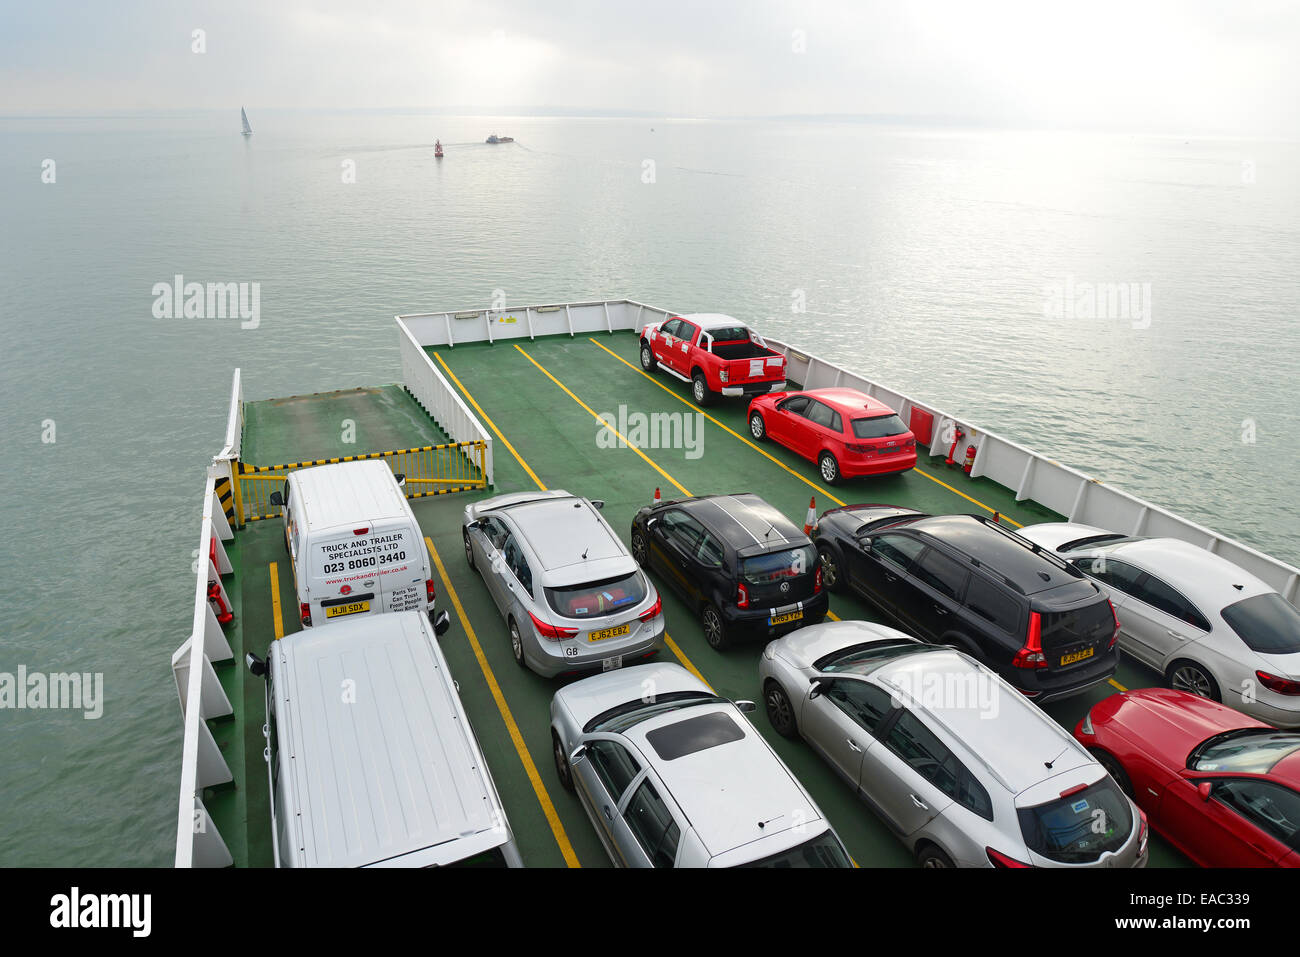 Red Funnel car ferry from Southampton to East Cowes, Isle of Wight, England, United Kingdom - Stock Image